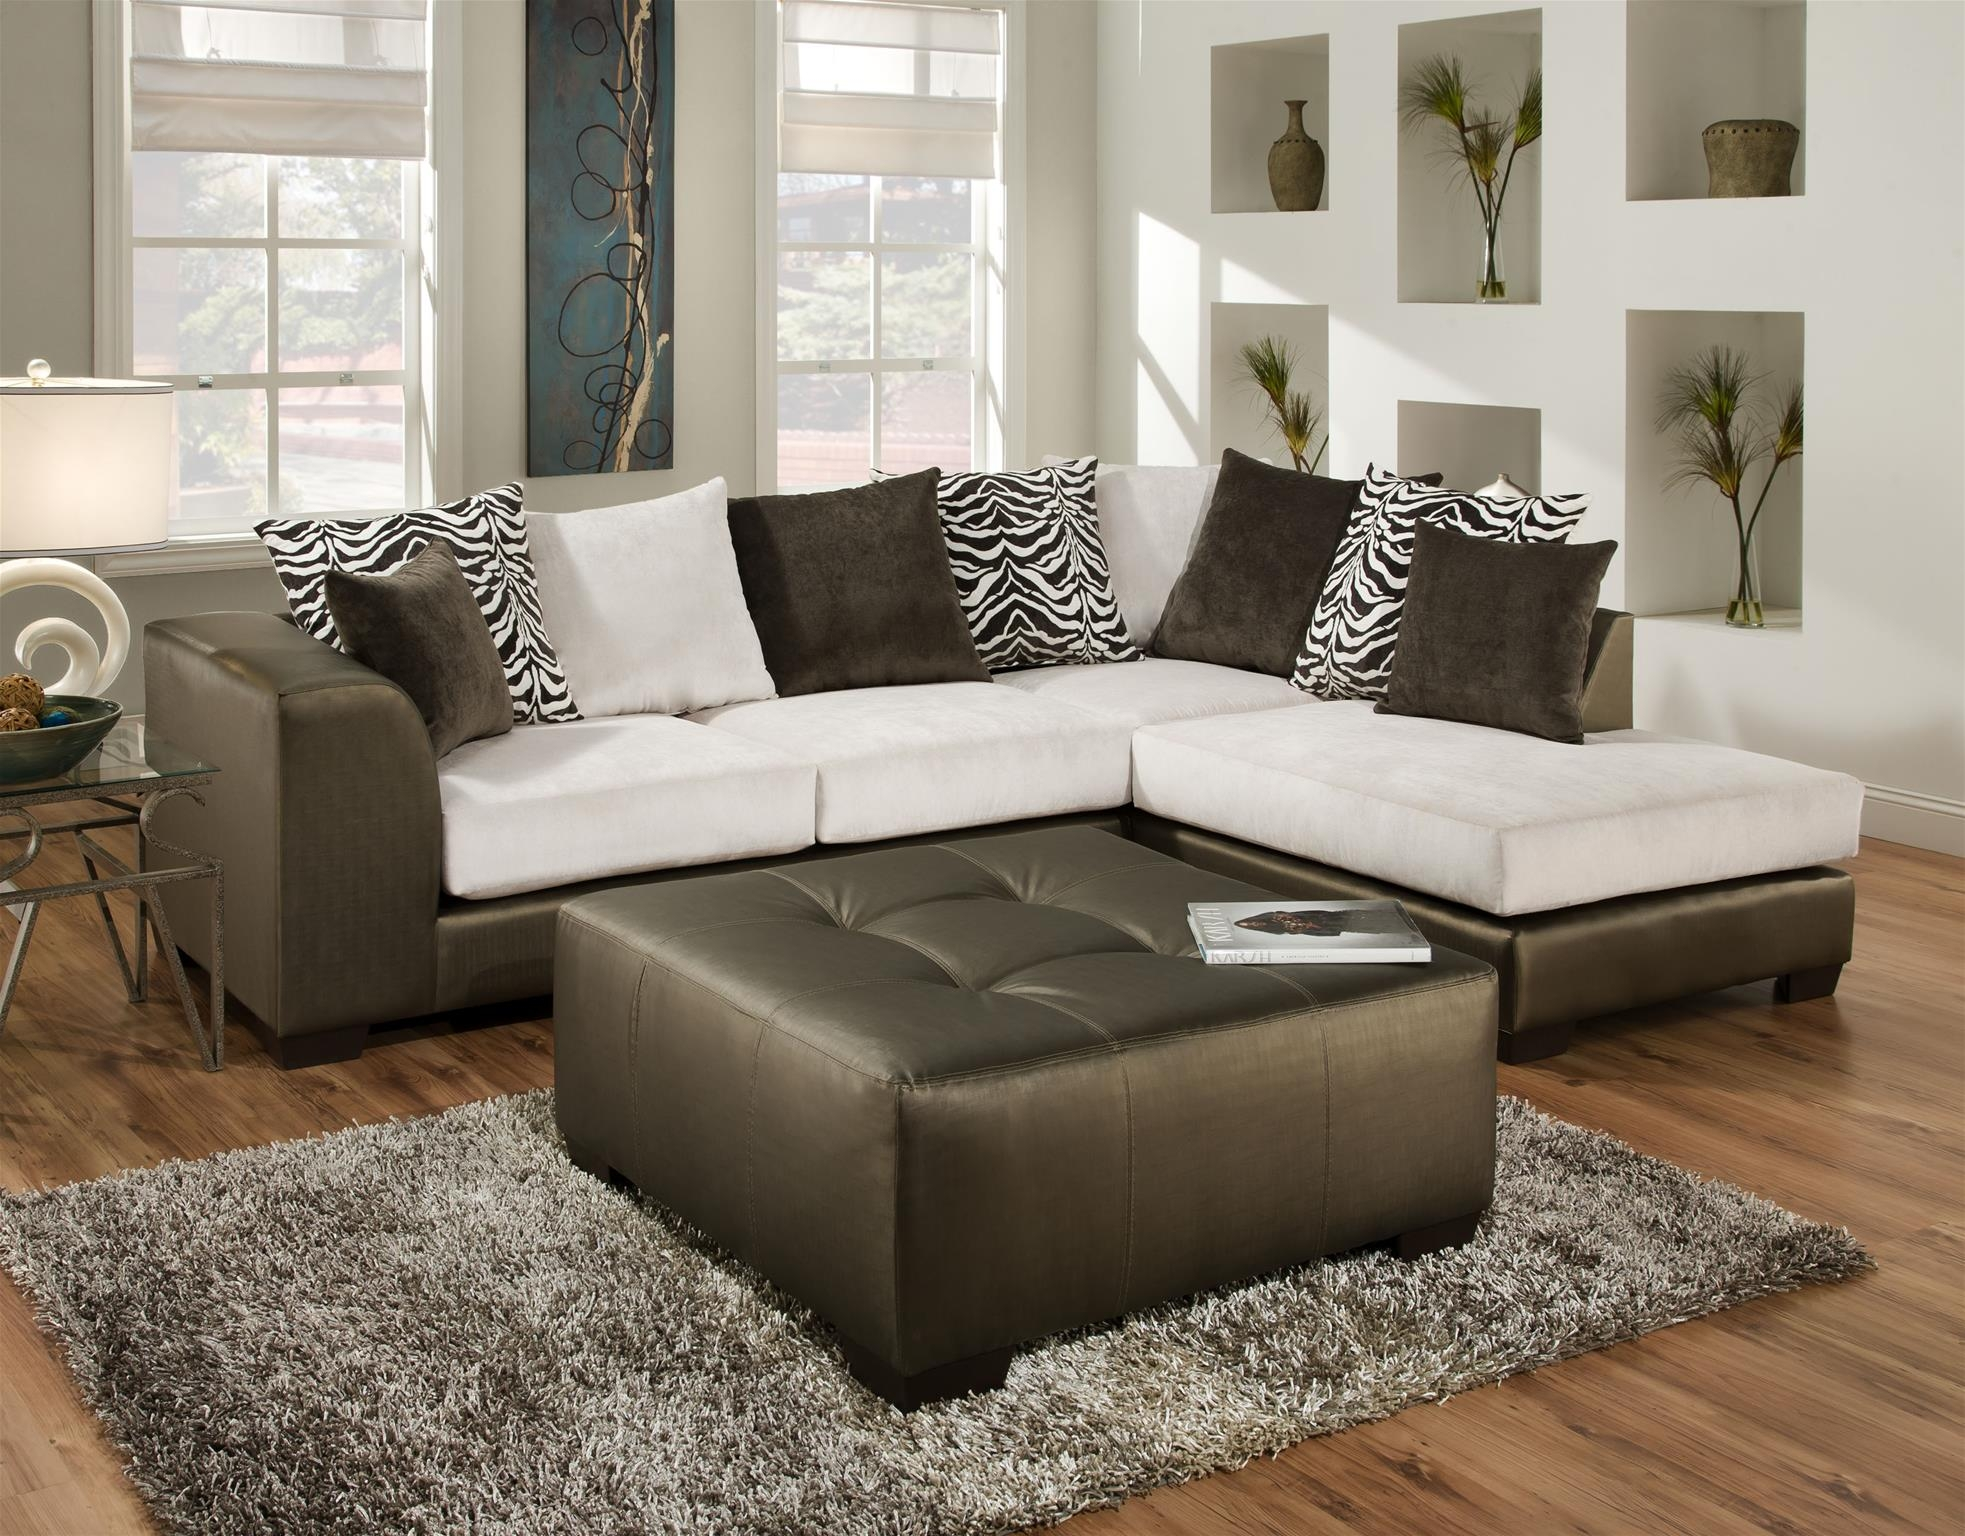 12 foot sofa best bed thick mattress ideas of 10 sectional